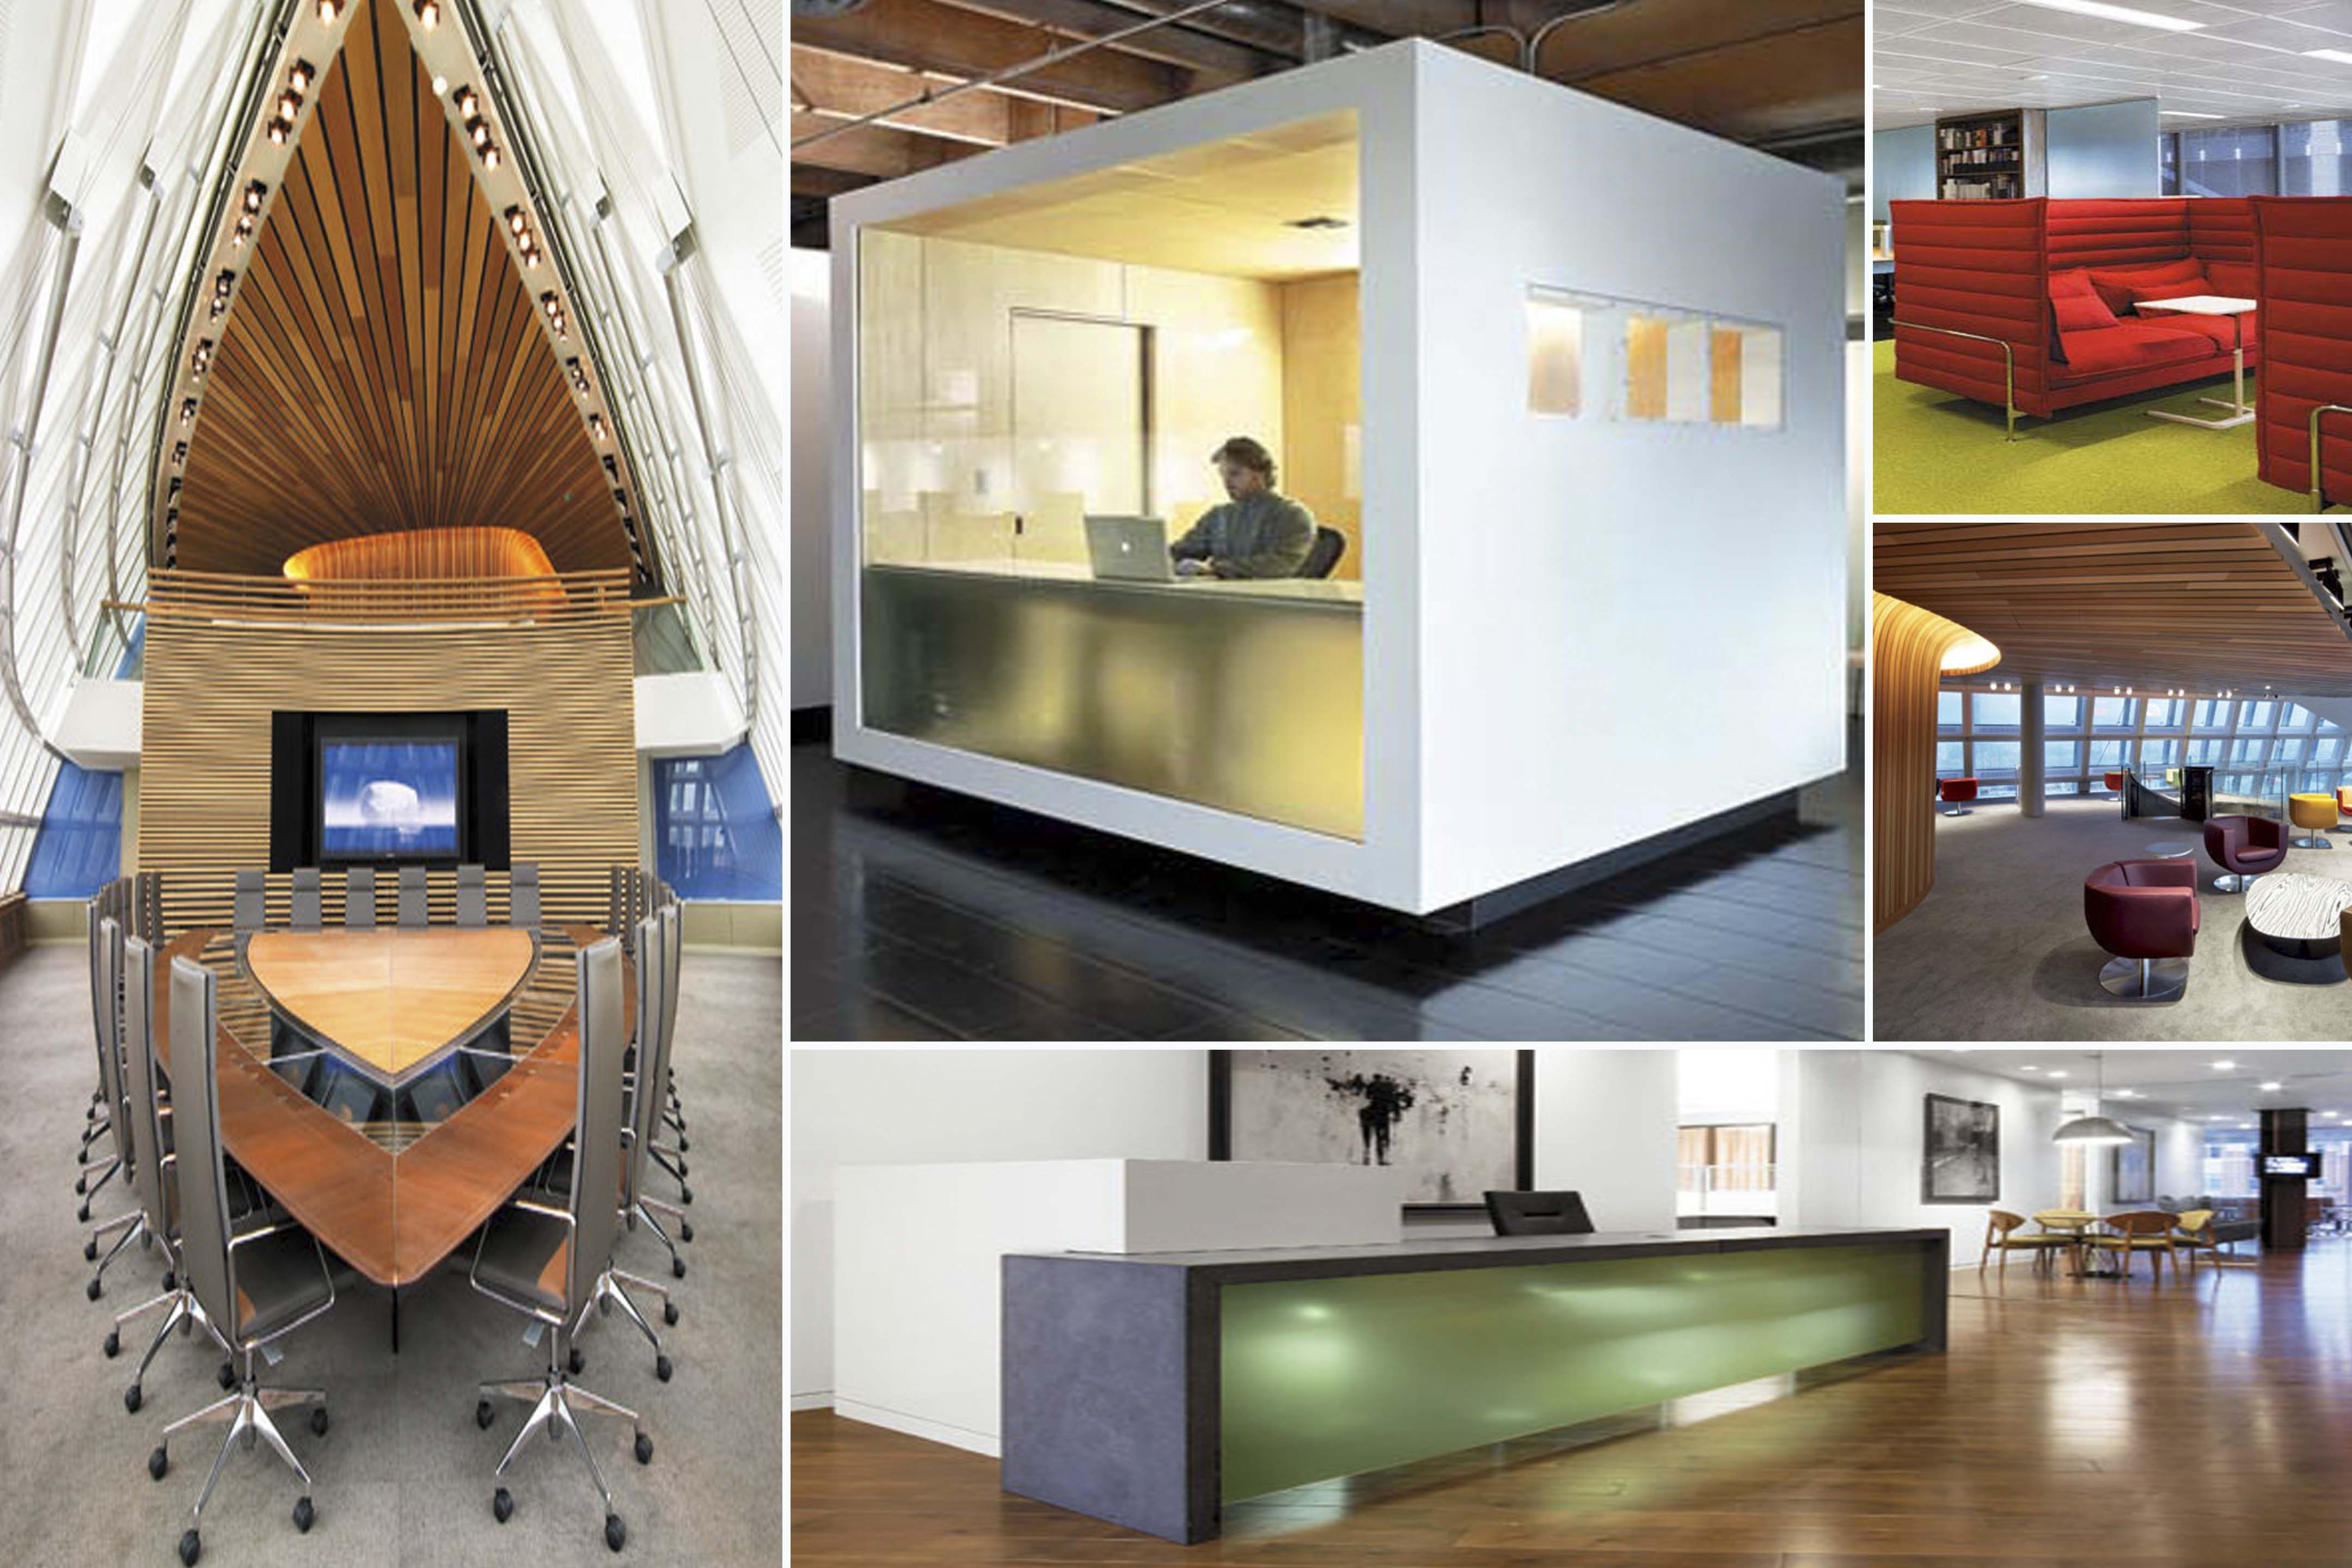 architects office design. Architectural Office Design. Break Room/ Game Room Design With Balcony Pics - Google Search Architects O